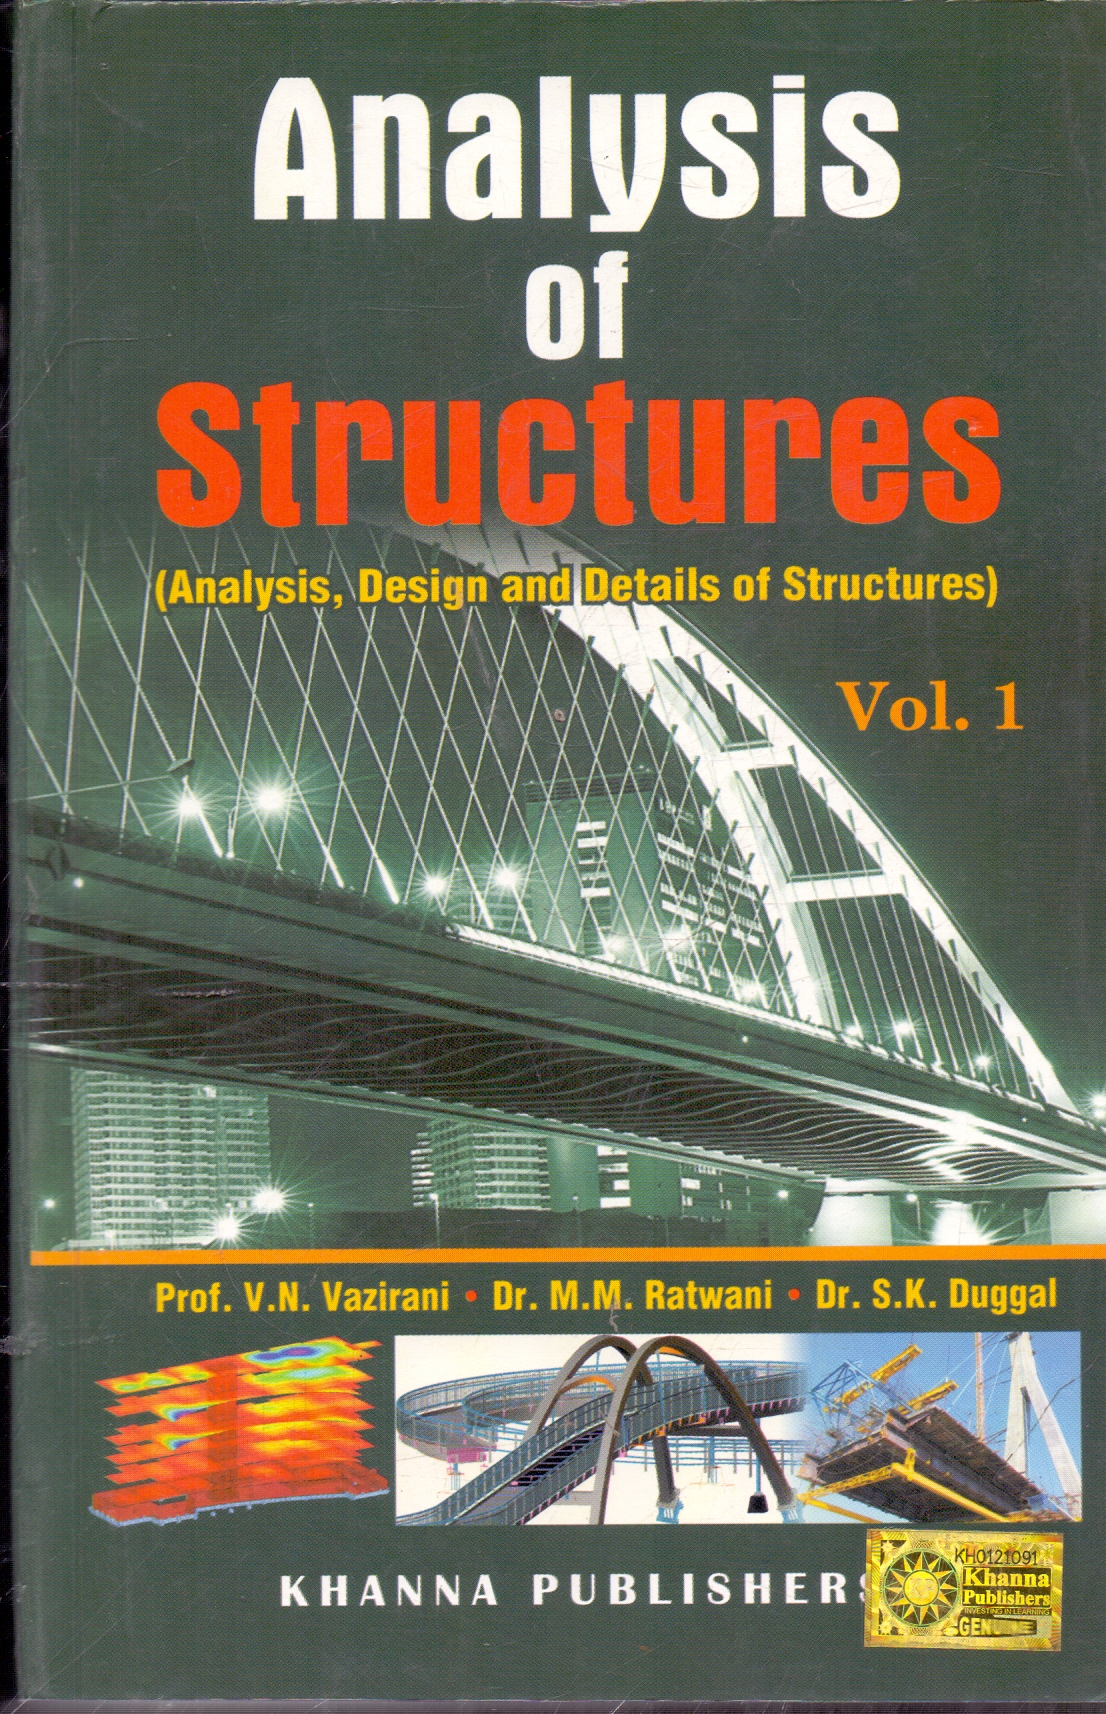 Analysis of Structures Vol l